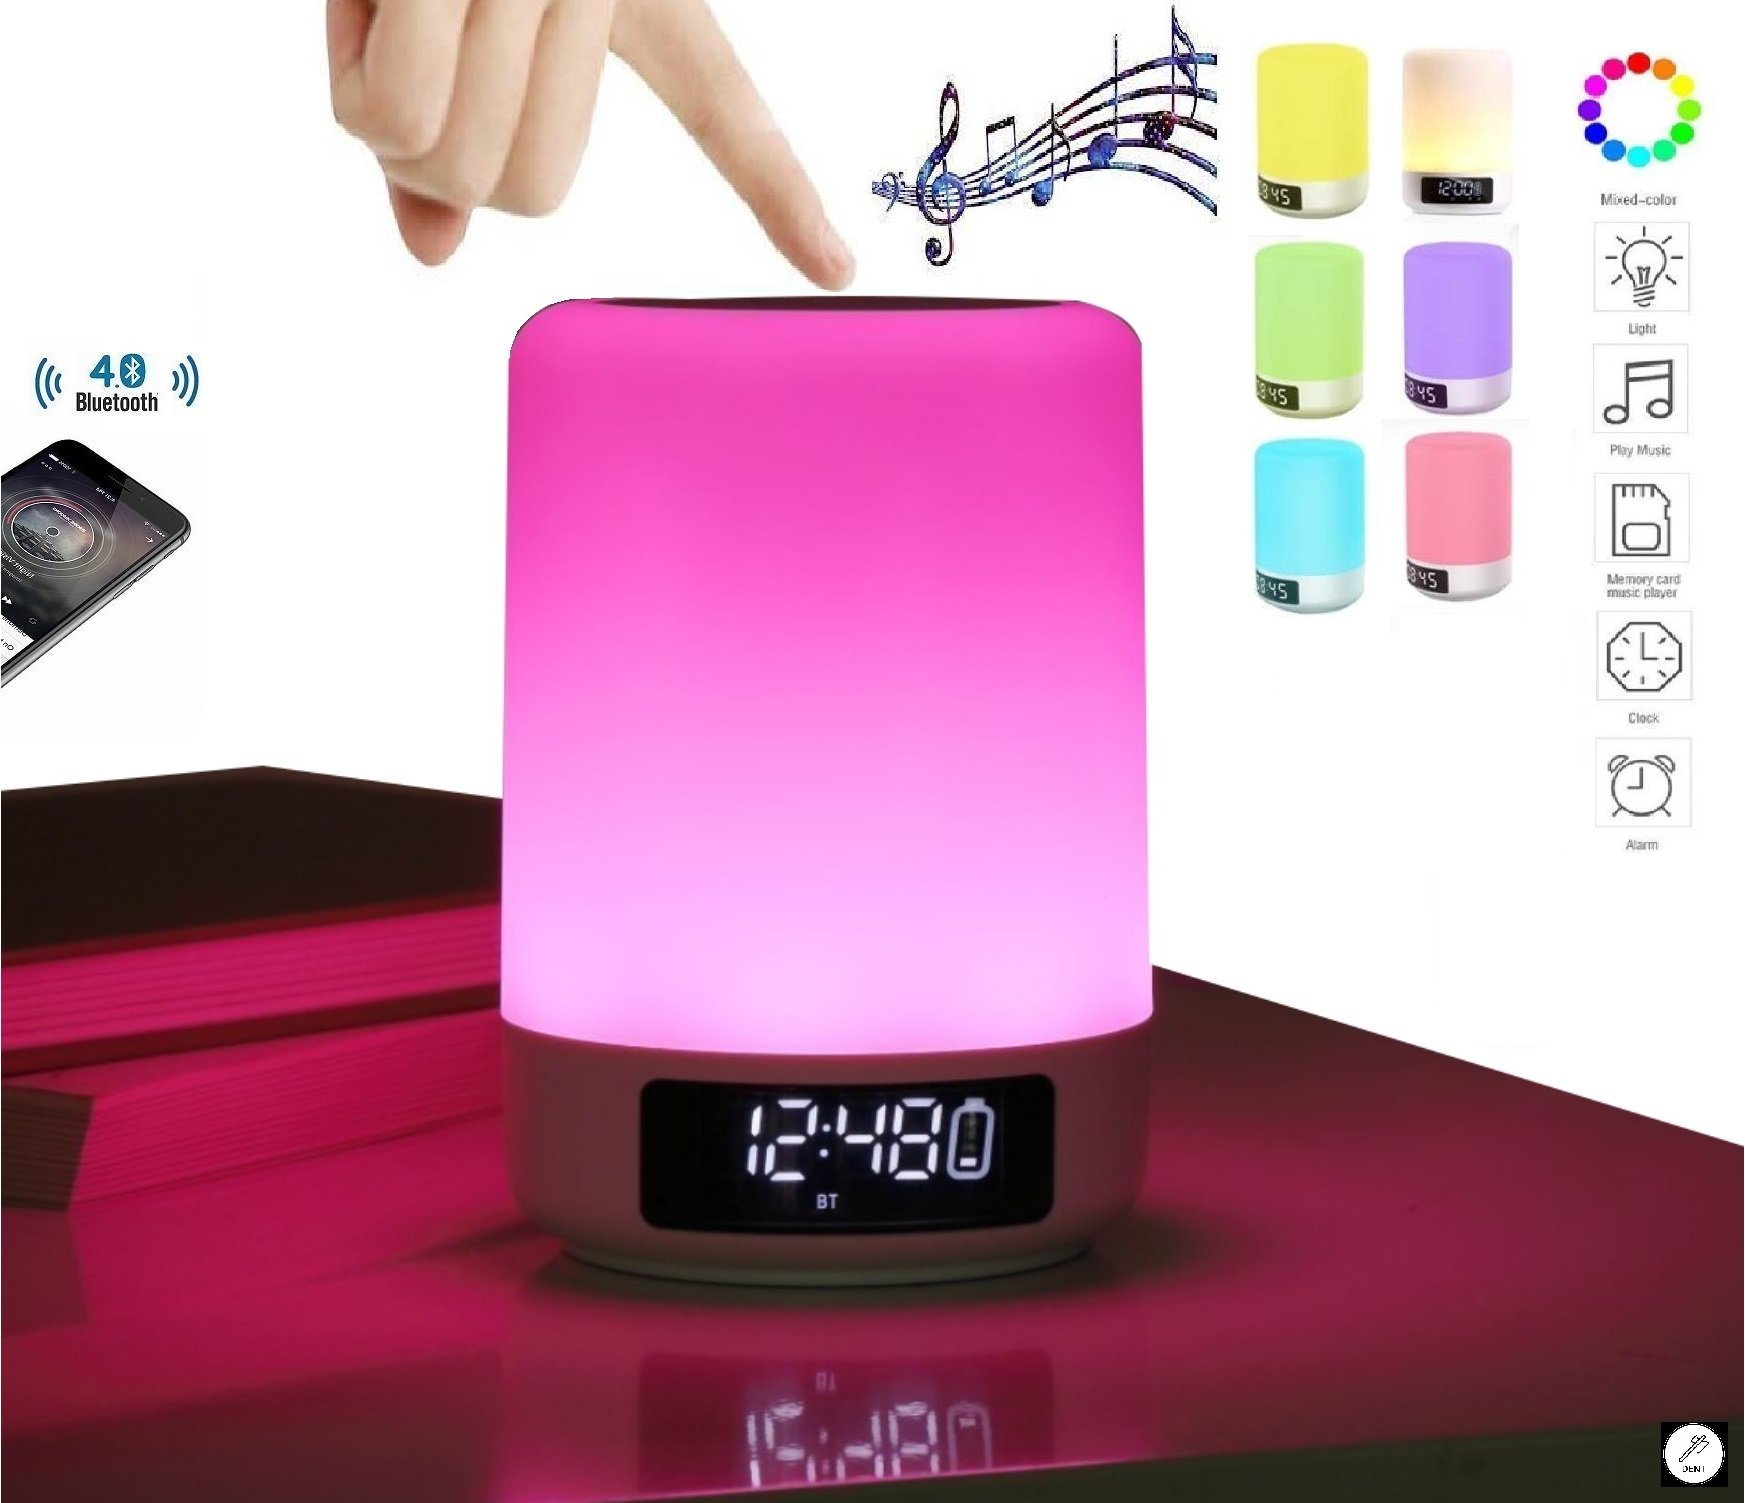 Bedside Table Lamp Alarm clock Portable Bluetooth Speakers..